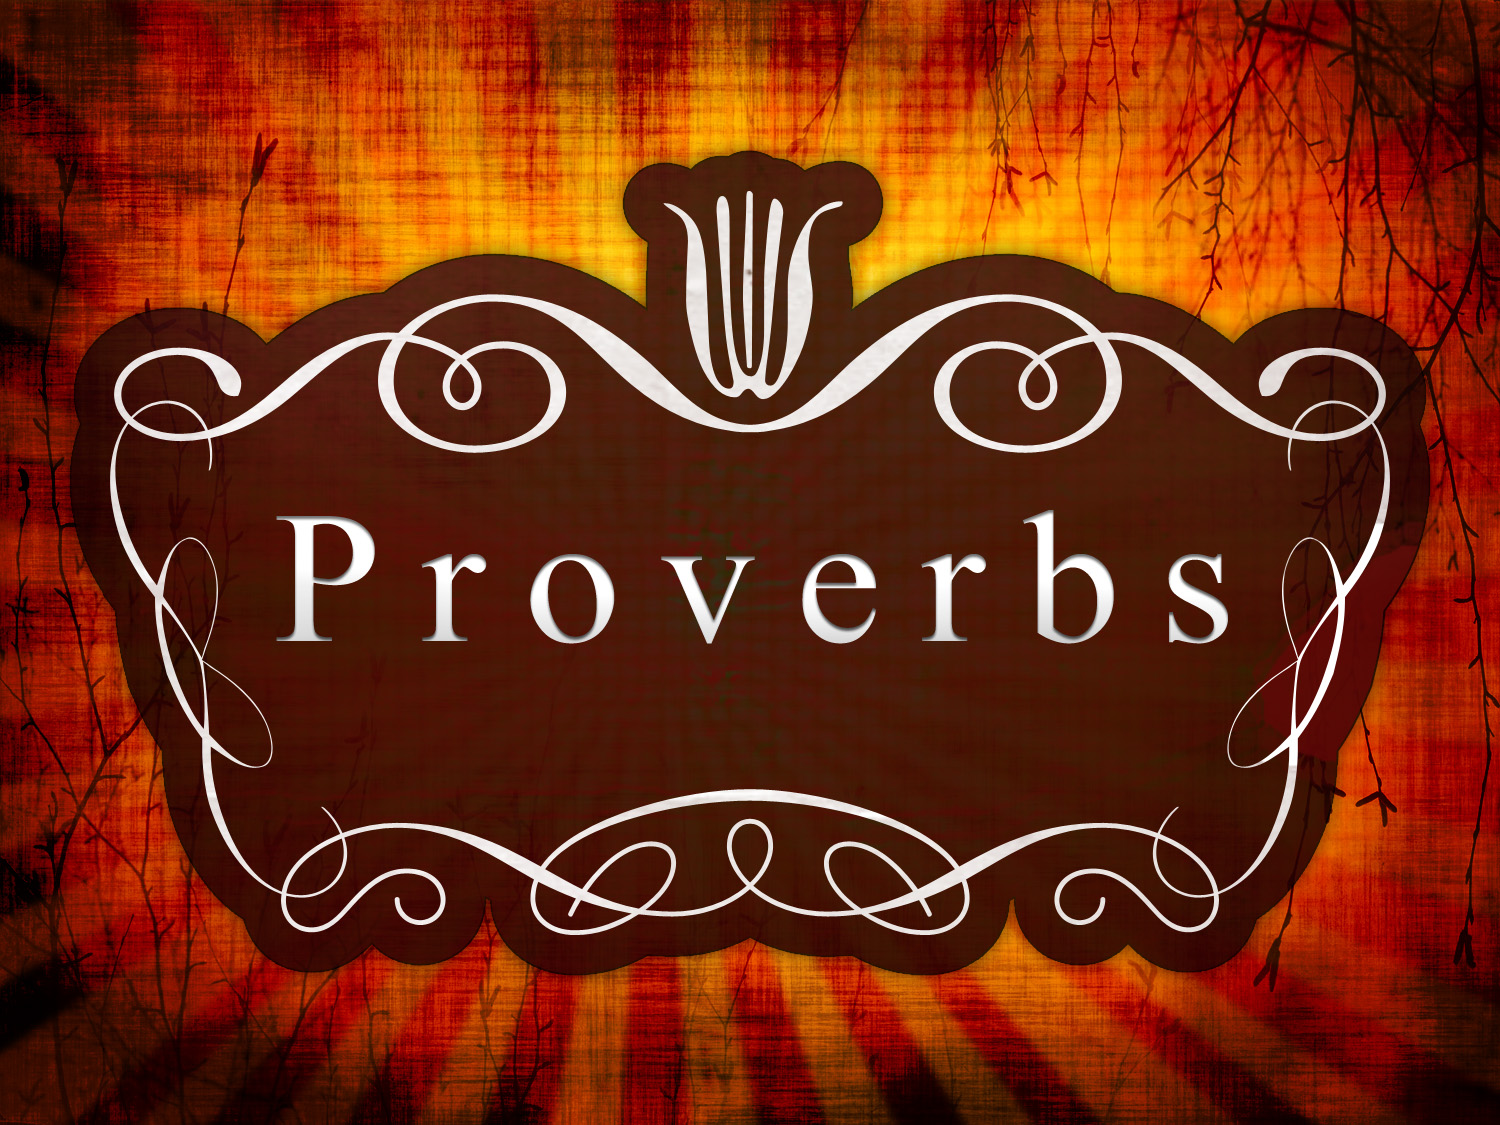 Words to Live By: The Power of Lao Proverbs